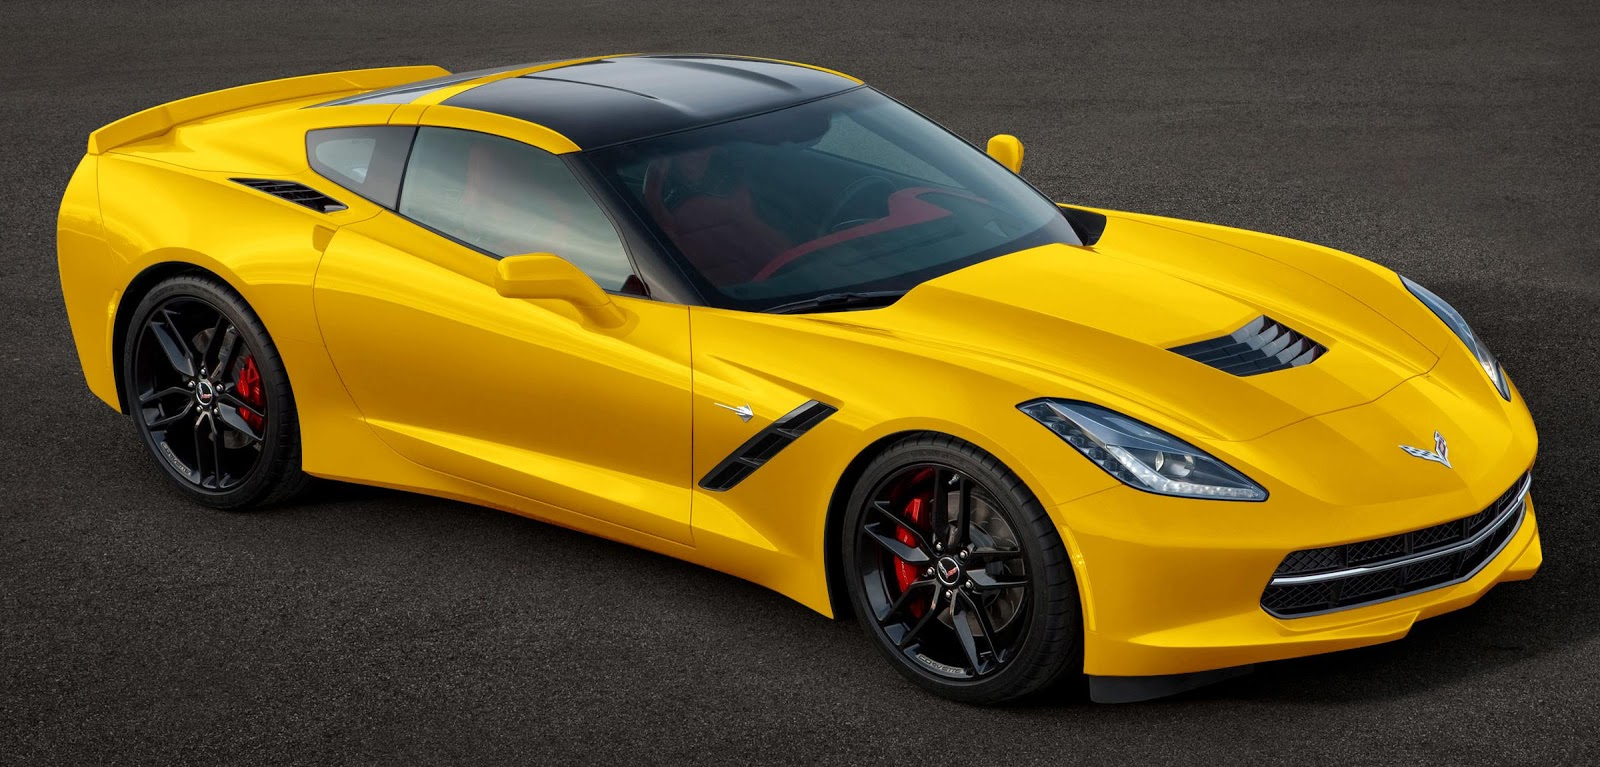 2014 corvette stingray 0 100 time car review specs price and. Cars Review. Best American Auto & Cars Review